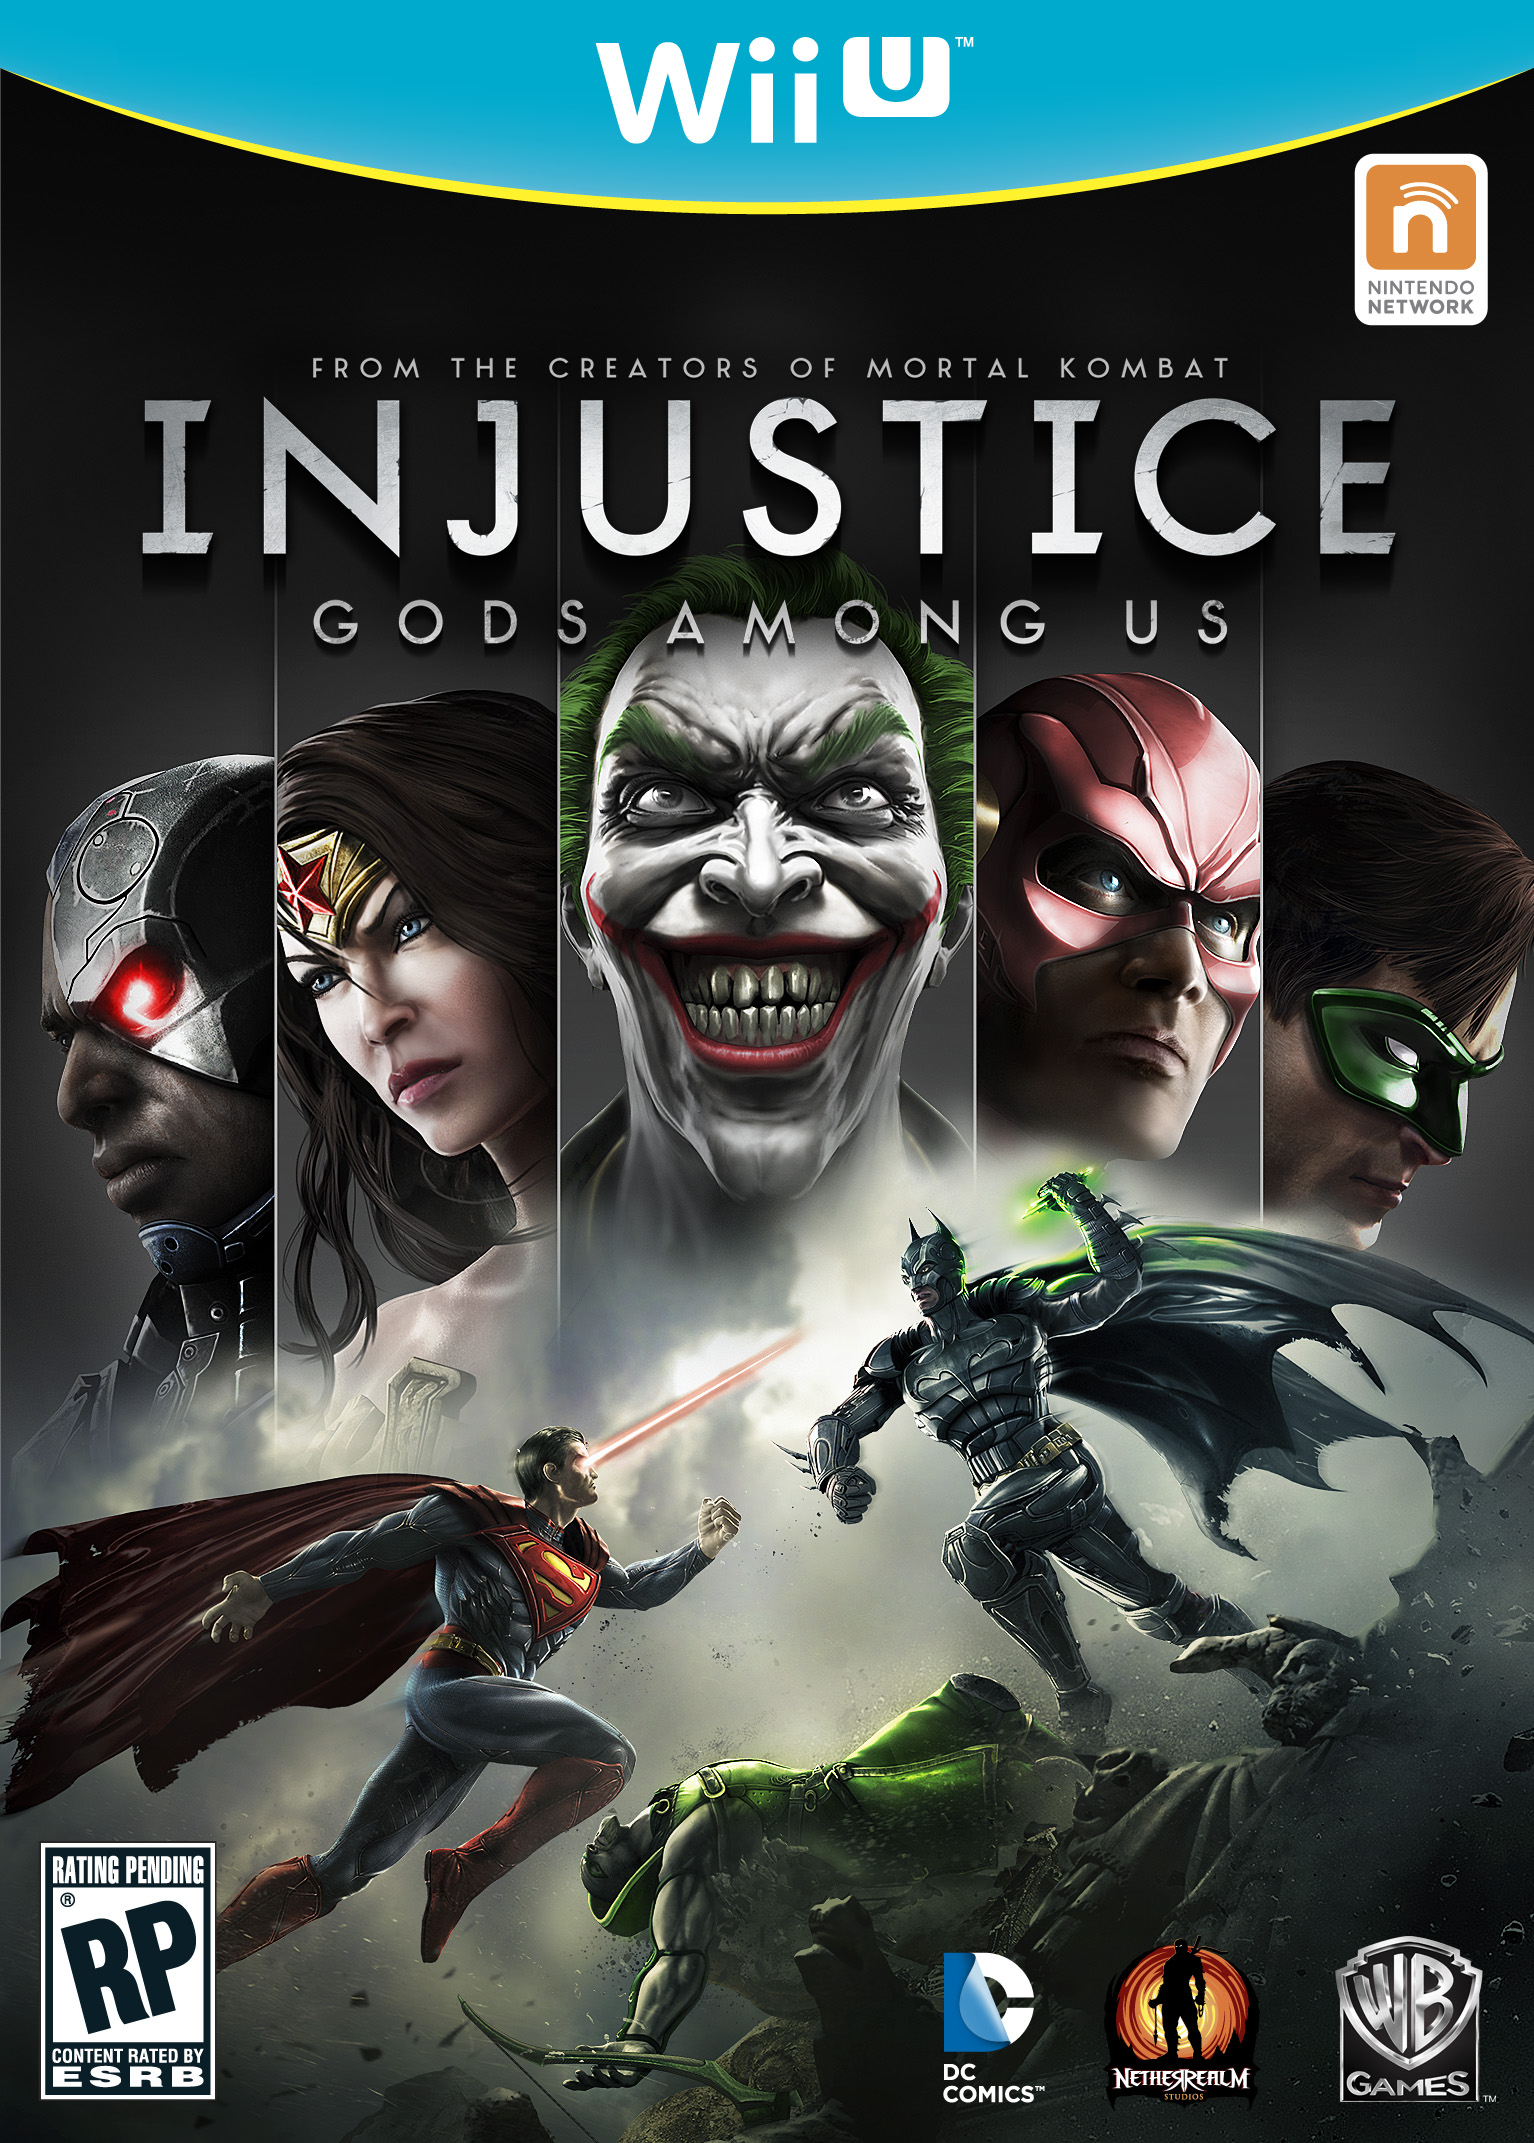 New iOS App for Injustice: Gods Among Us is Not Compatible With The Wii U